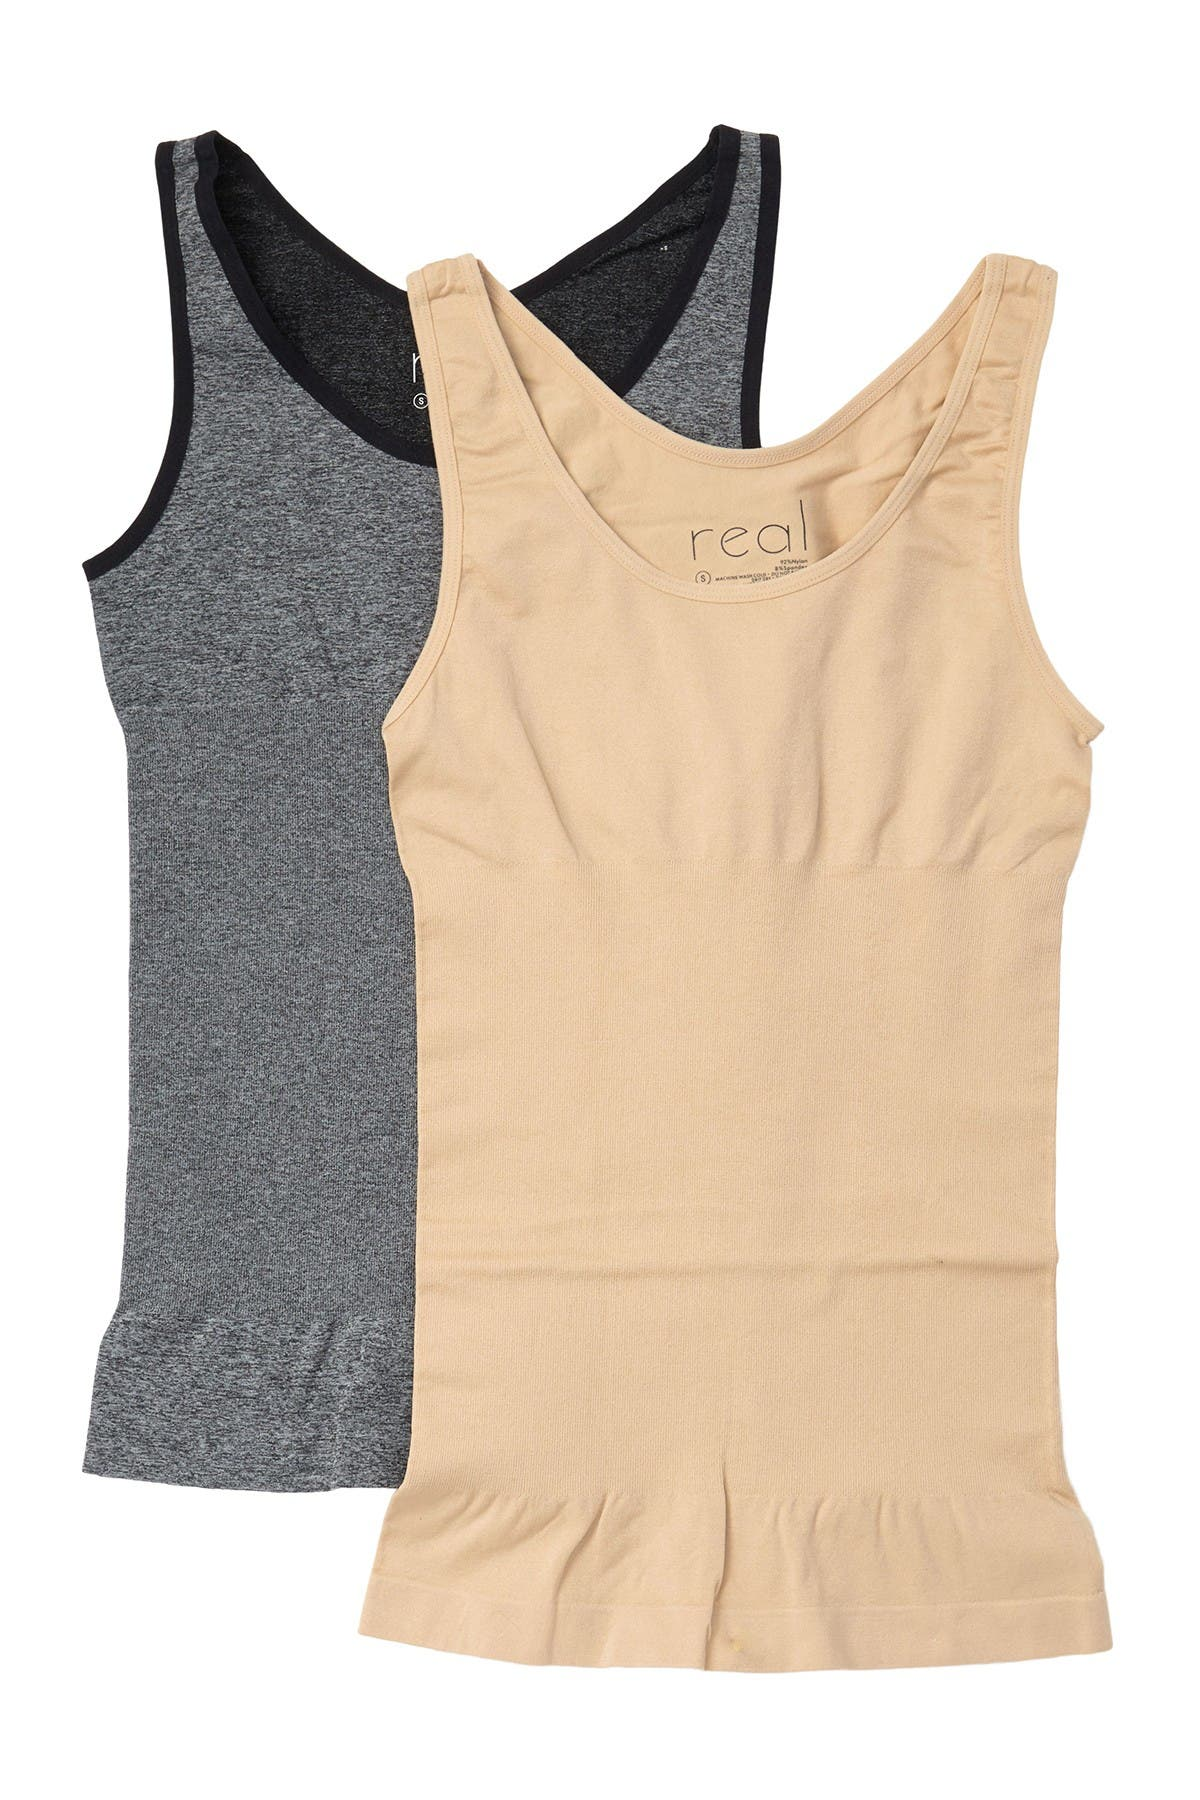 Image of REAL UNDERWEAR Lucy Shaping Tank Top - Pack of 2